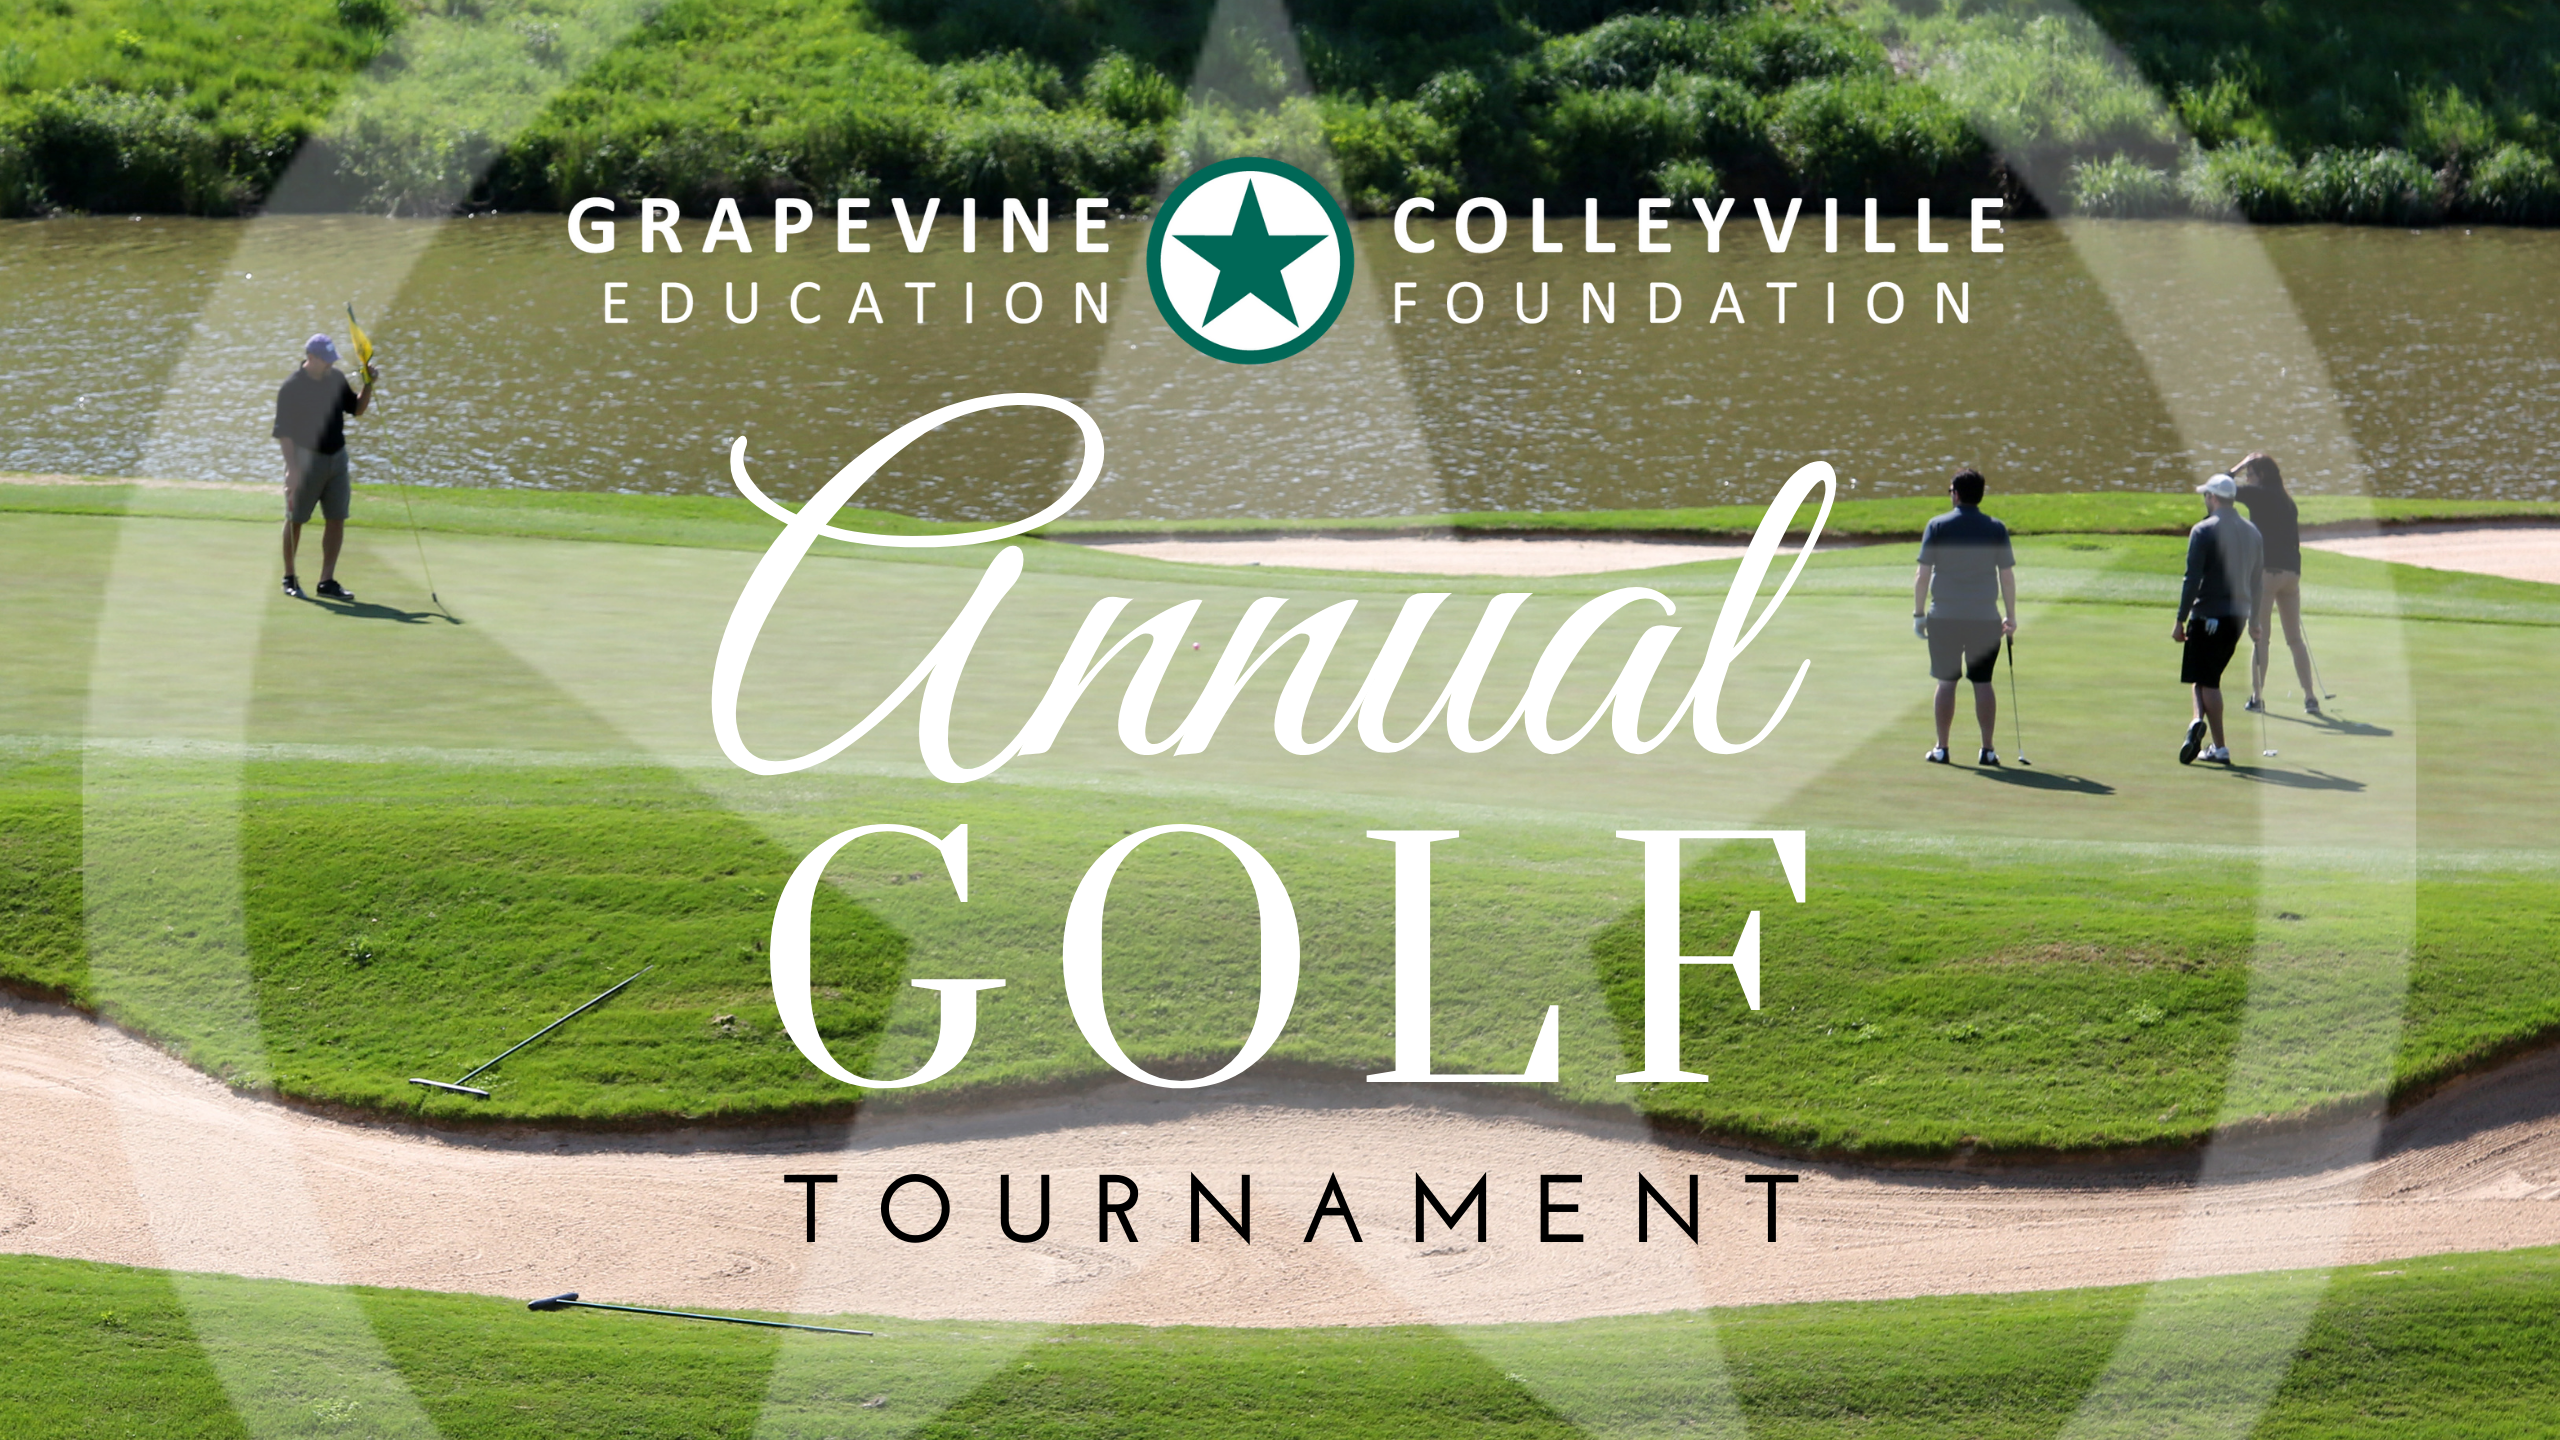 GCEF annual golf tournament